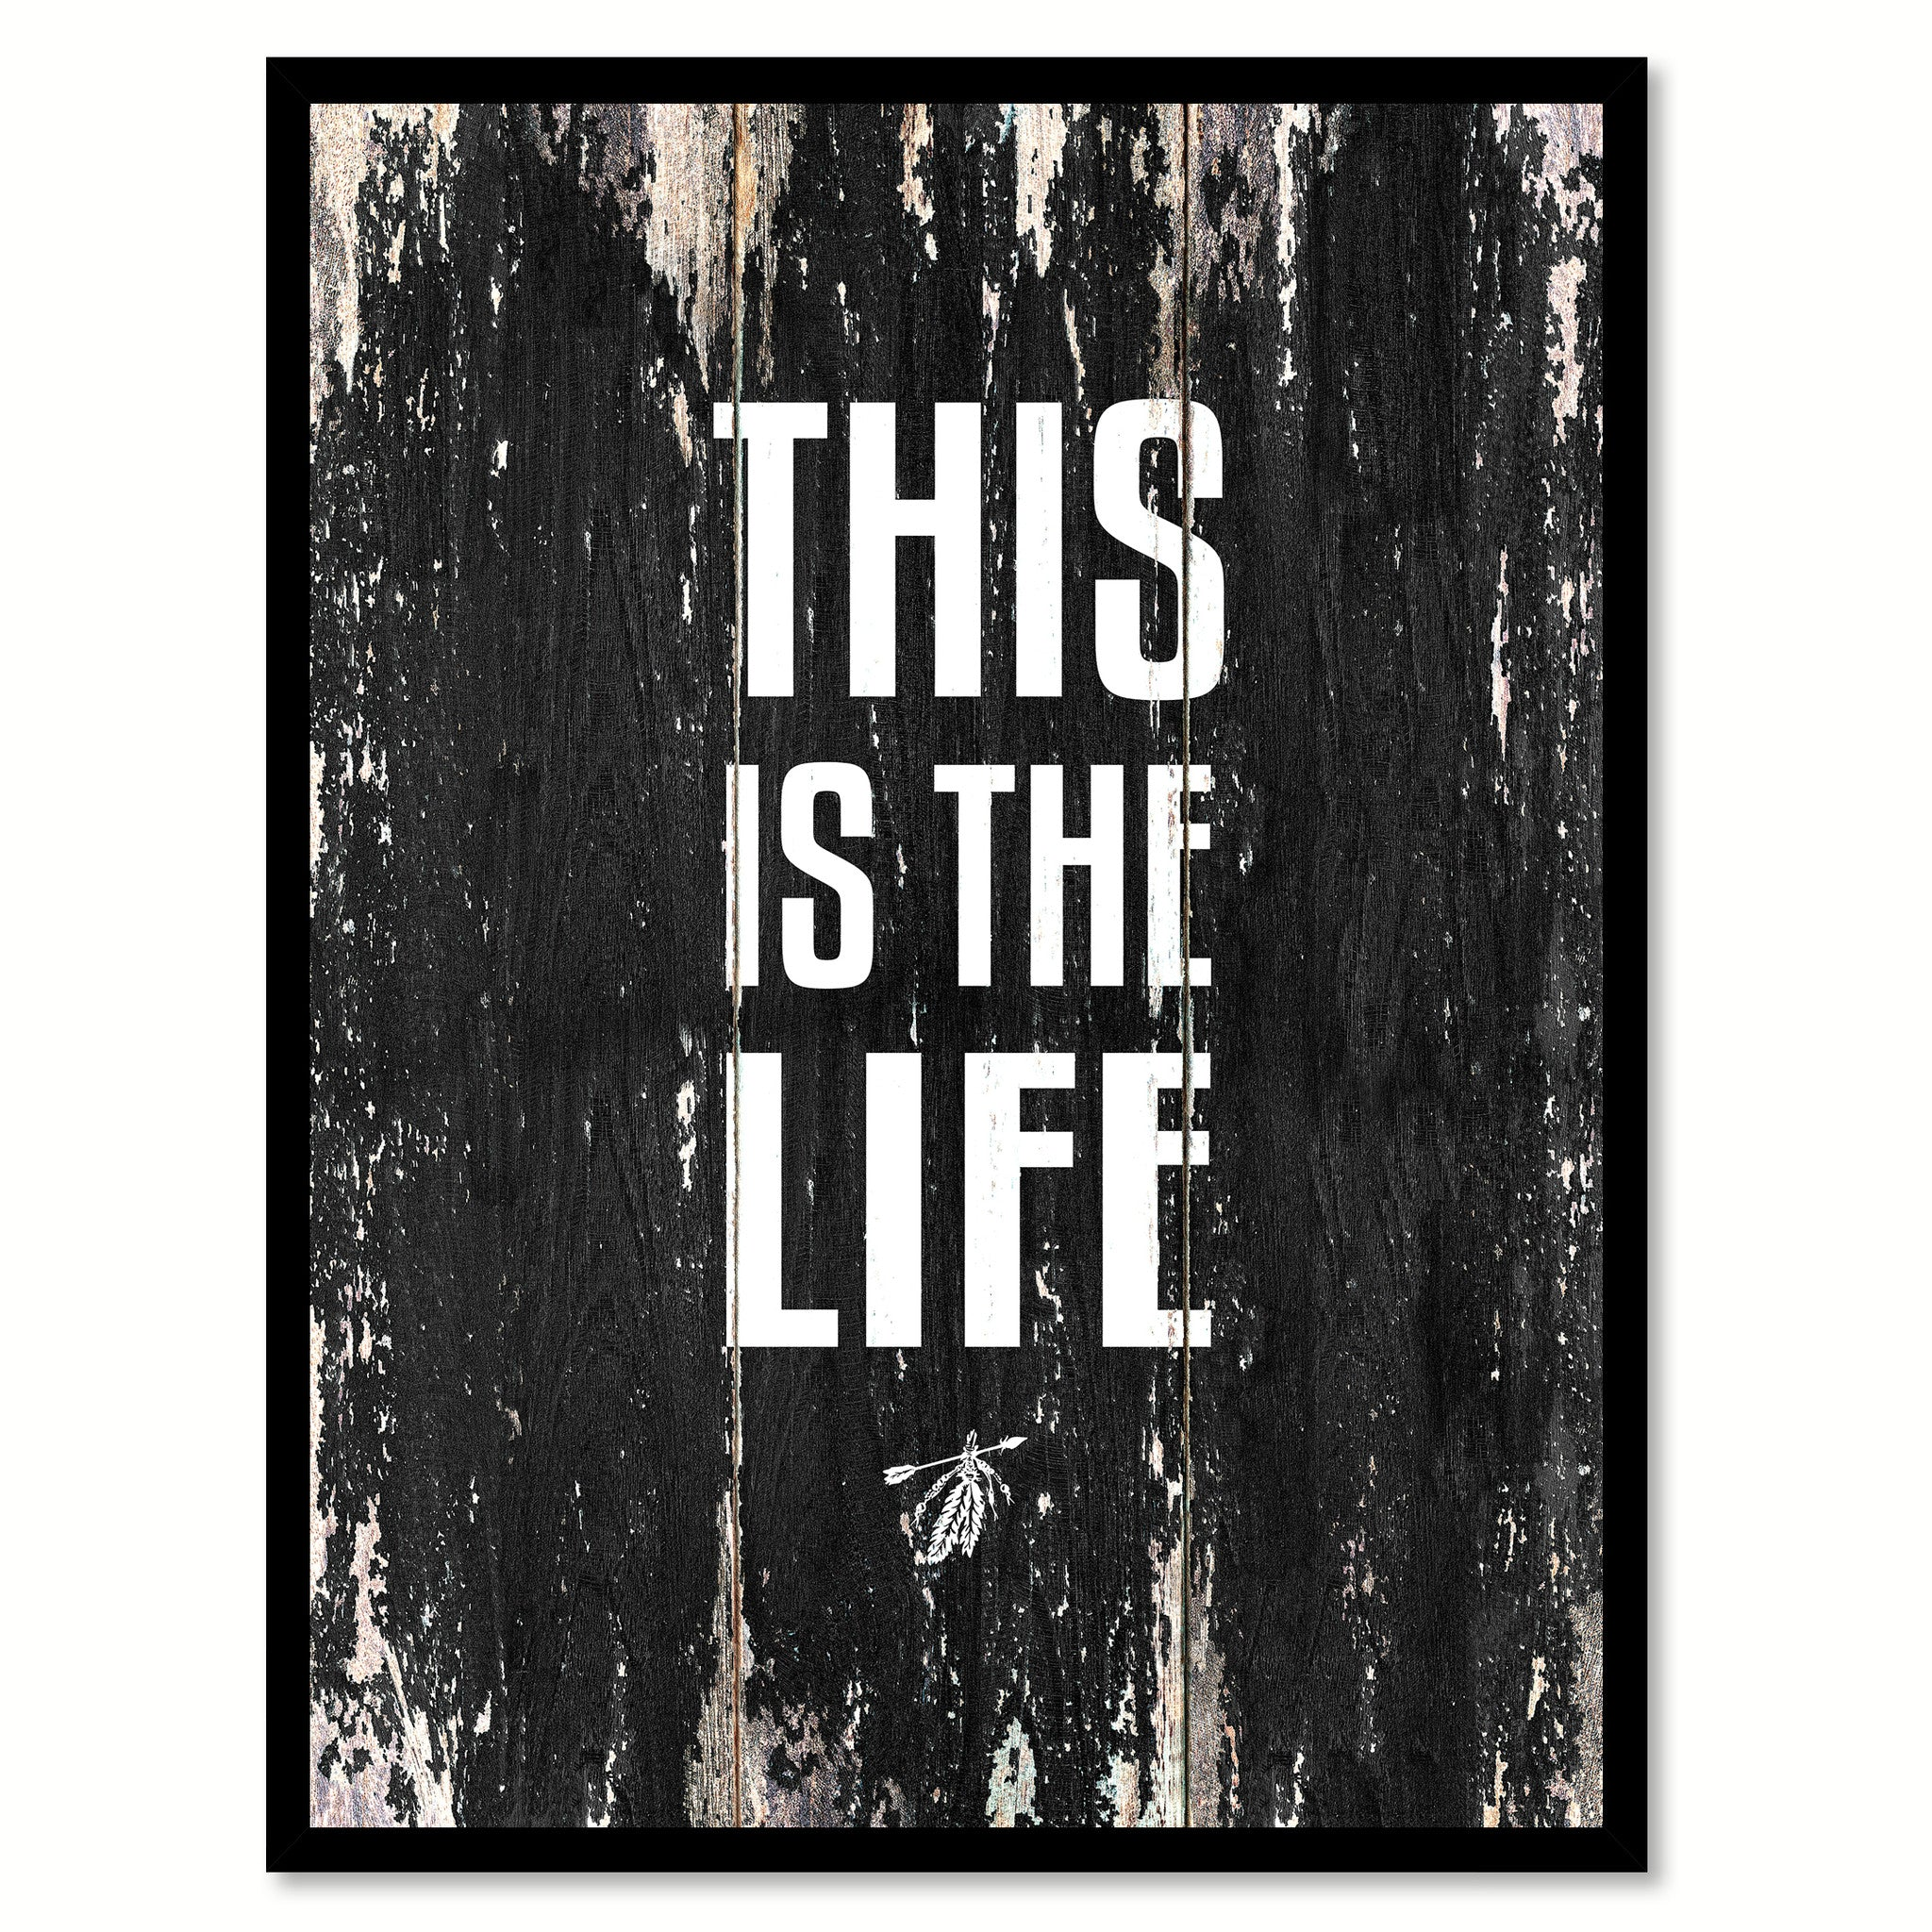 This is the life 1 Motivational Quote Saying Canvas Print with Picture Frame Home Decor Wall Art